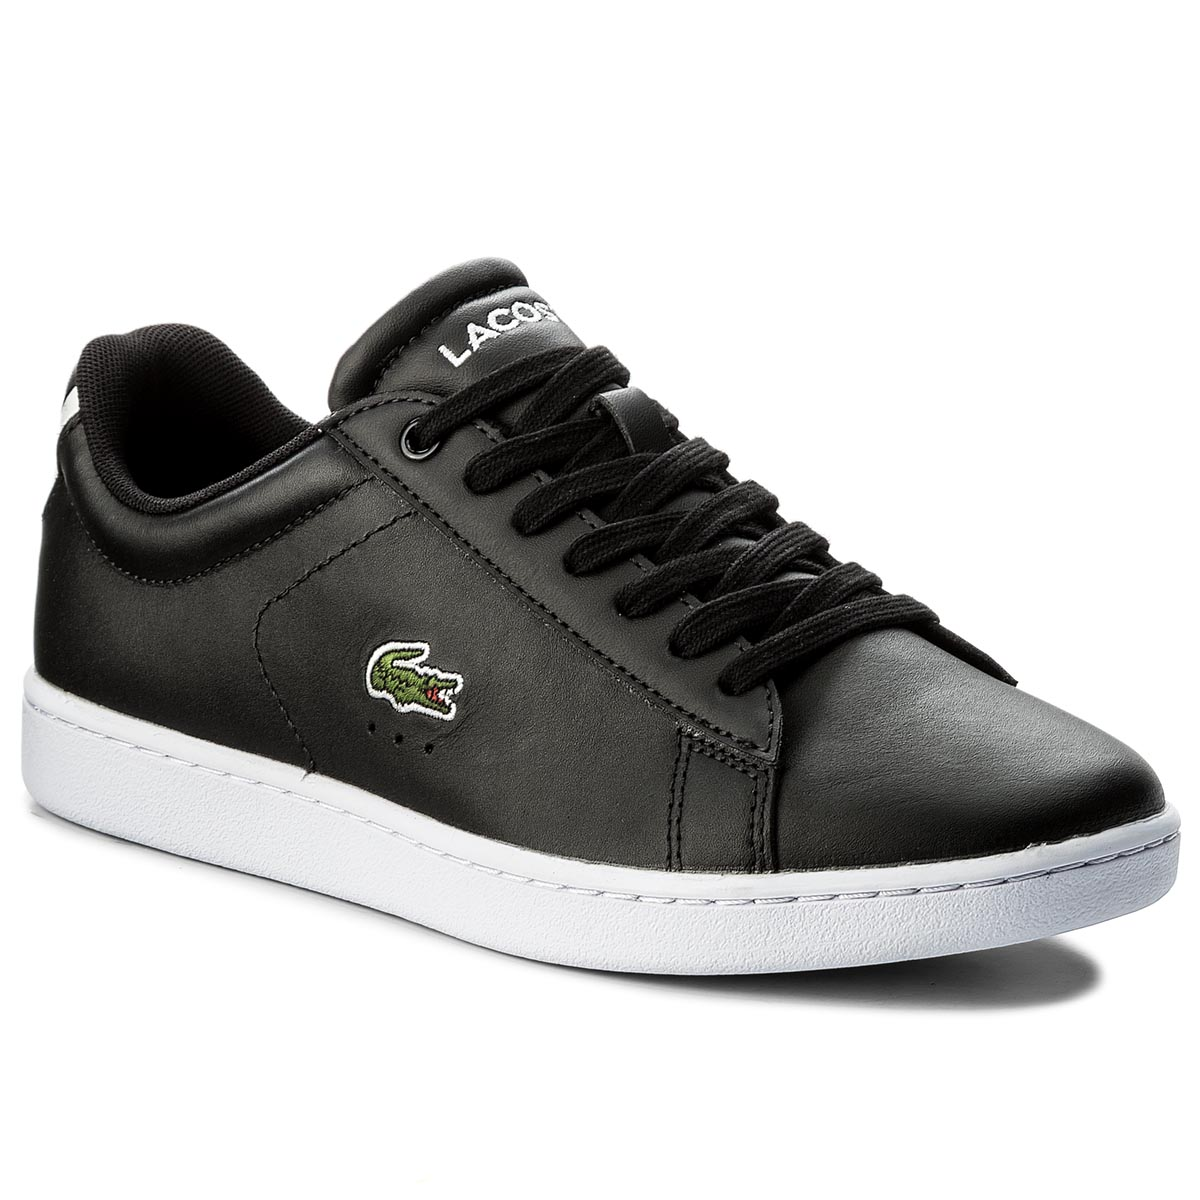 Sneakers LACOSTE - Carnaby Evo Bl 1 Spw 7-32SPW0132024 Black